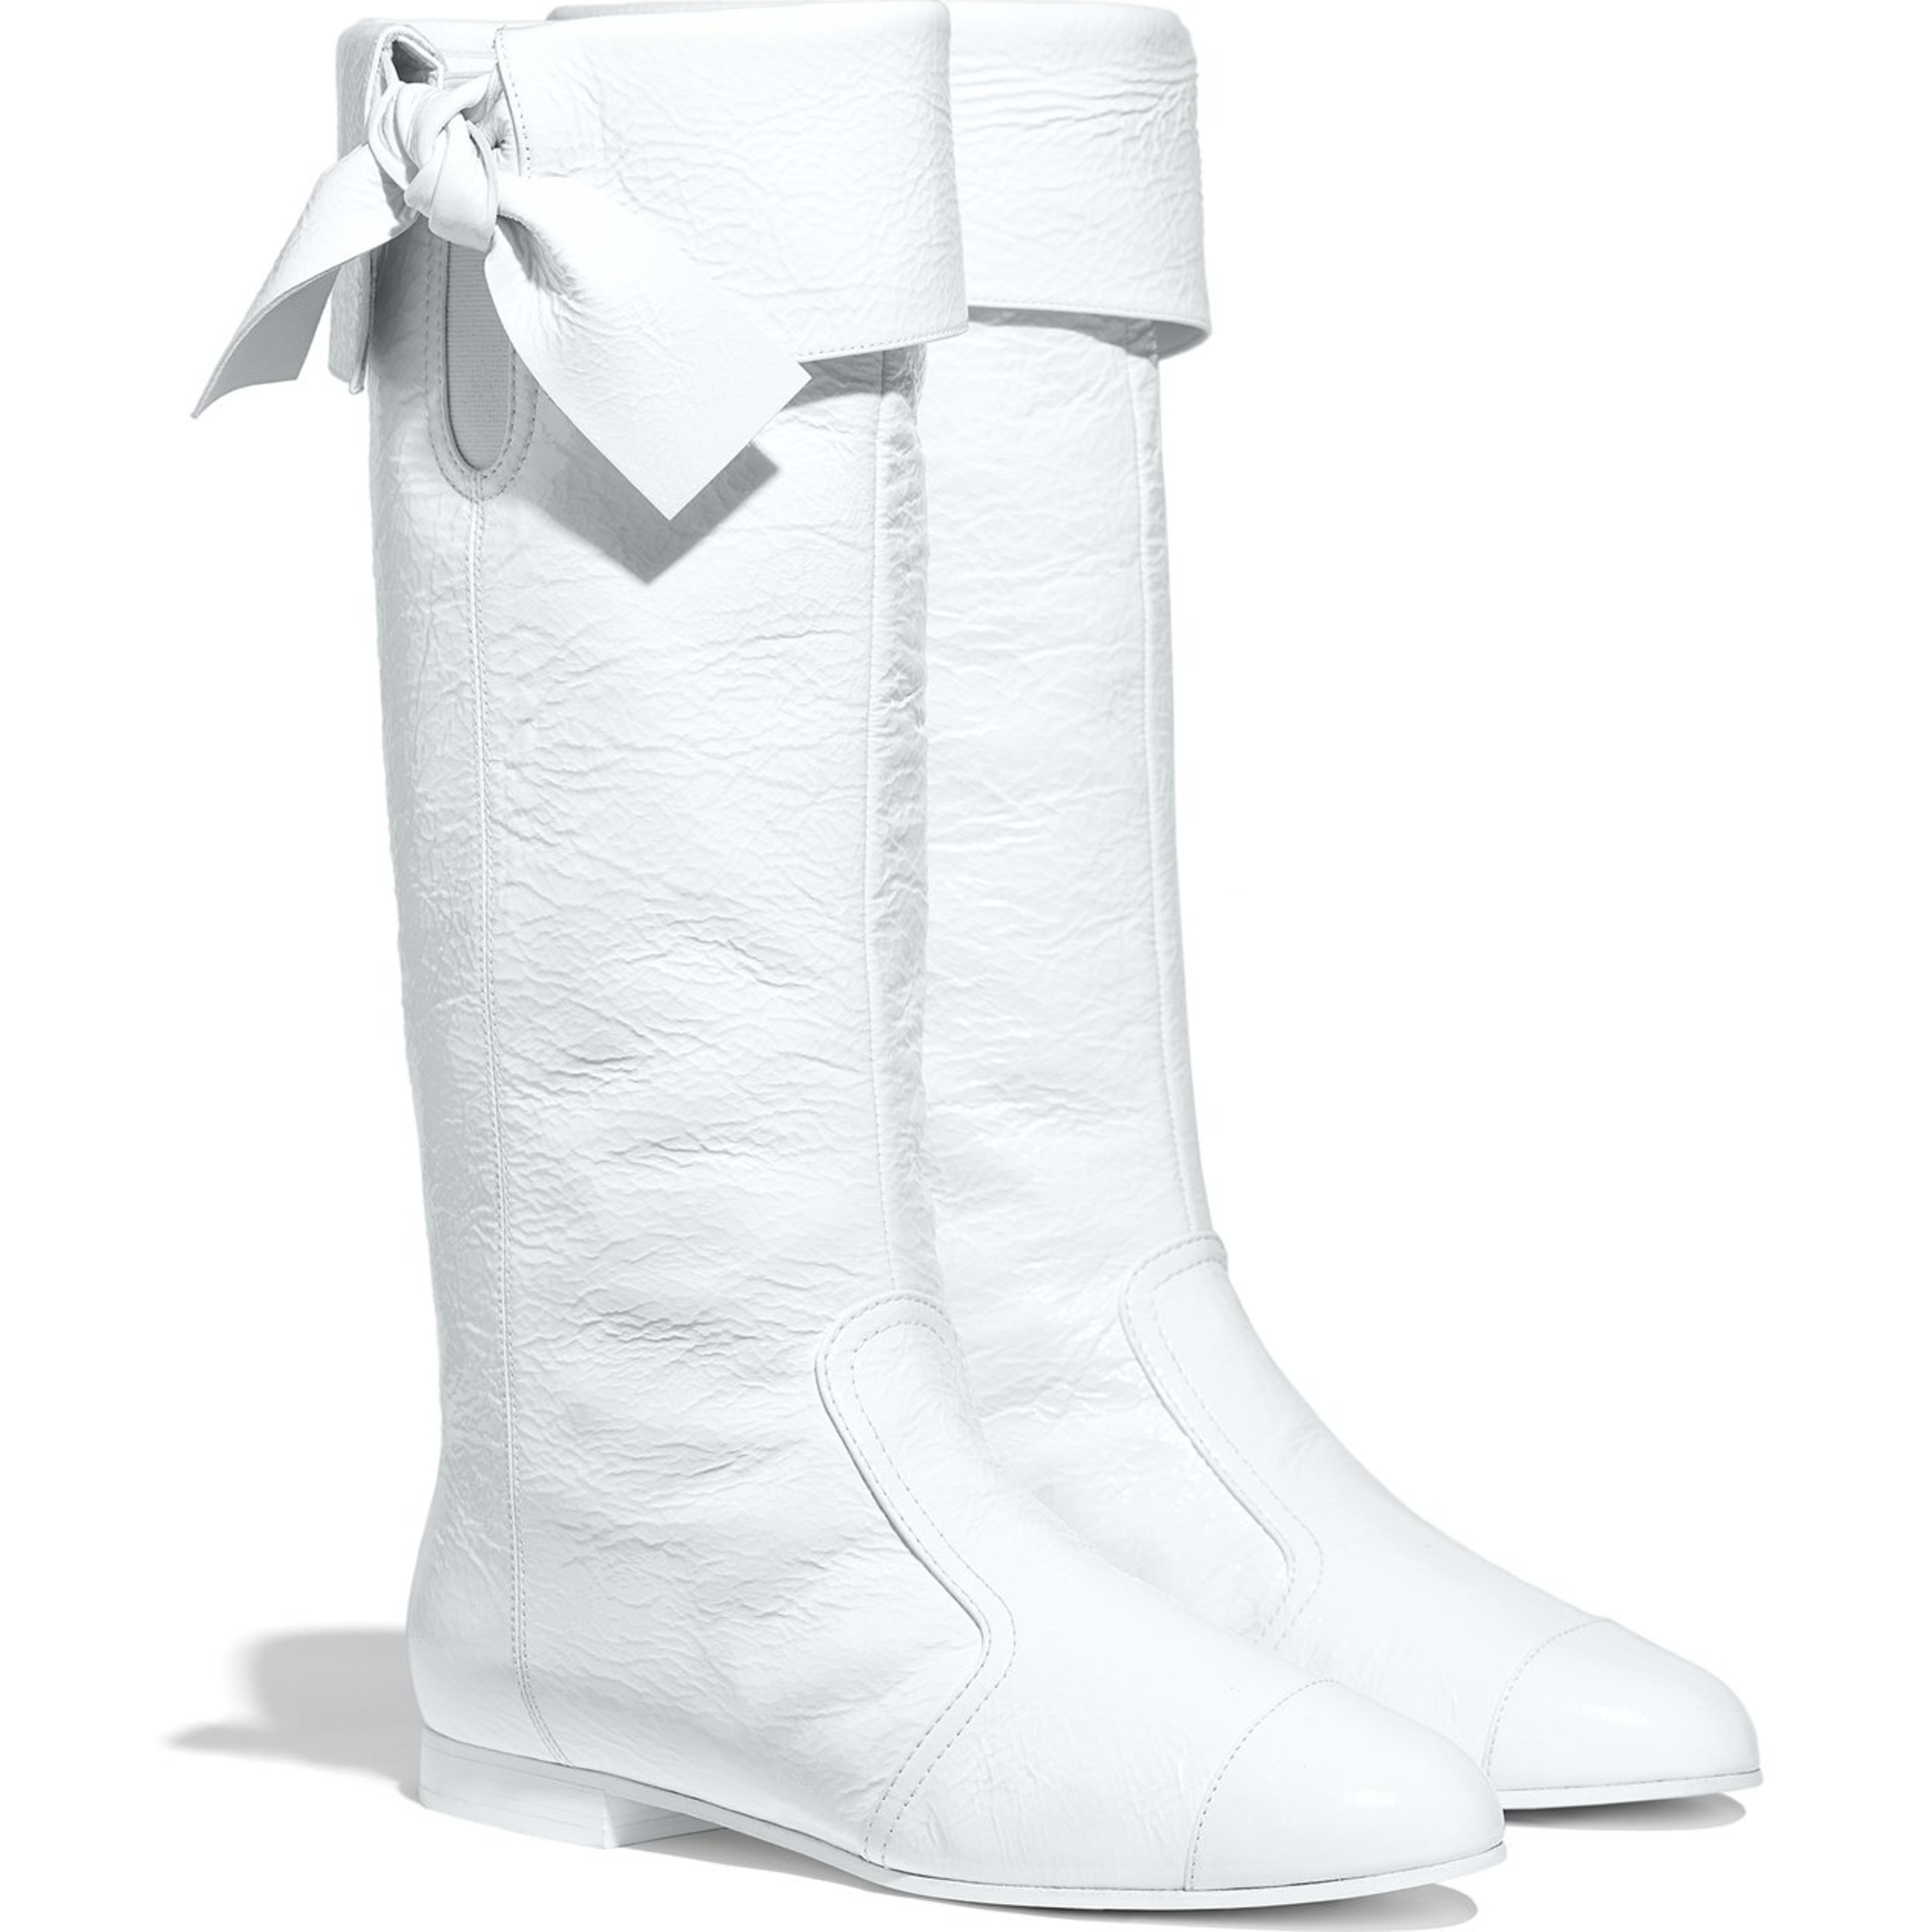 High Boots - White - Crumpled Lambskin - Alternative view - see full sized version